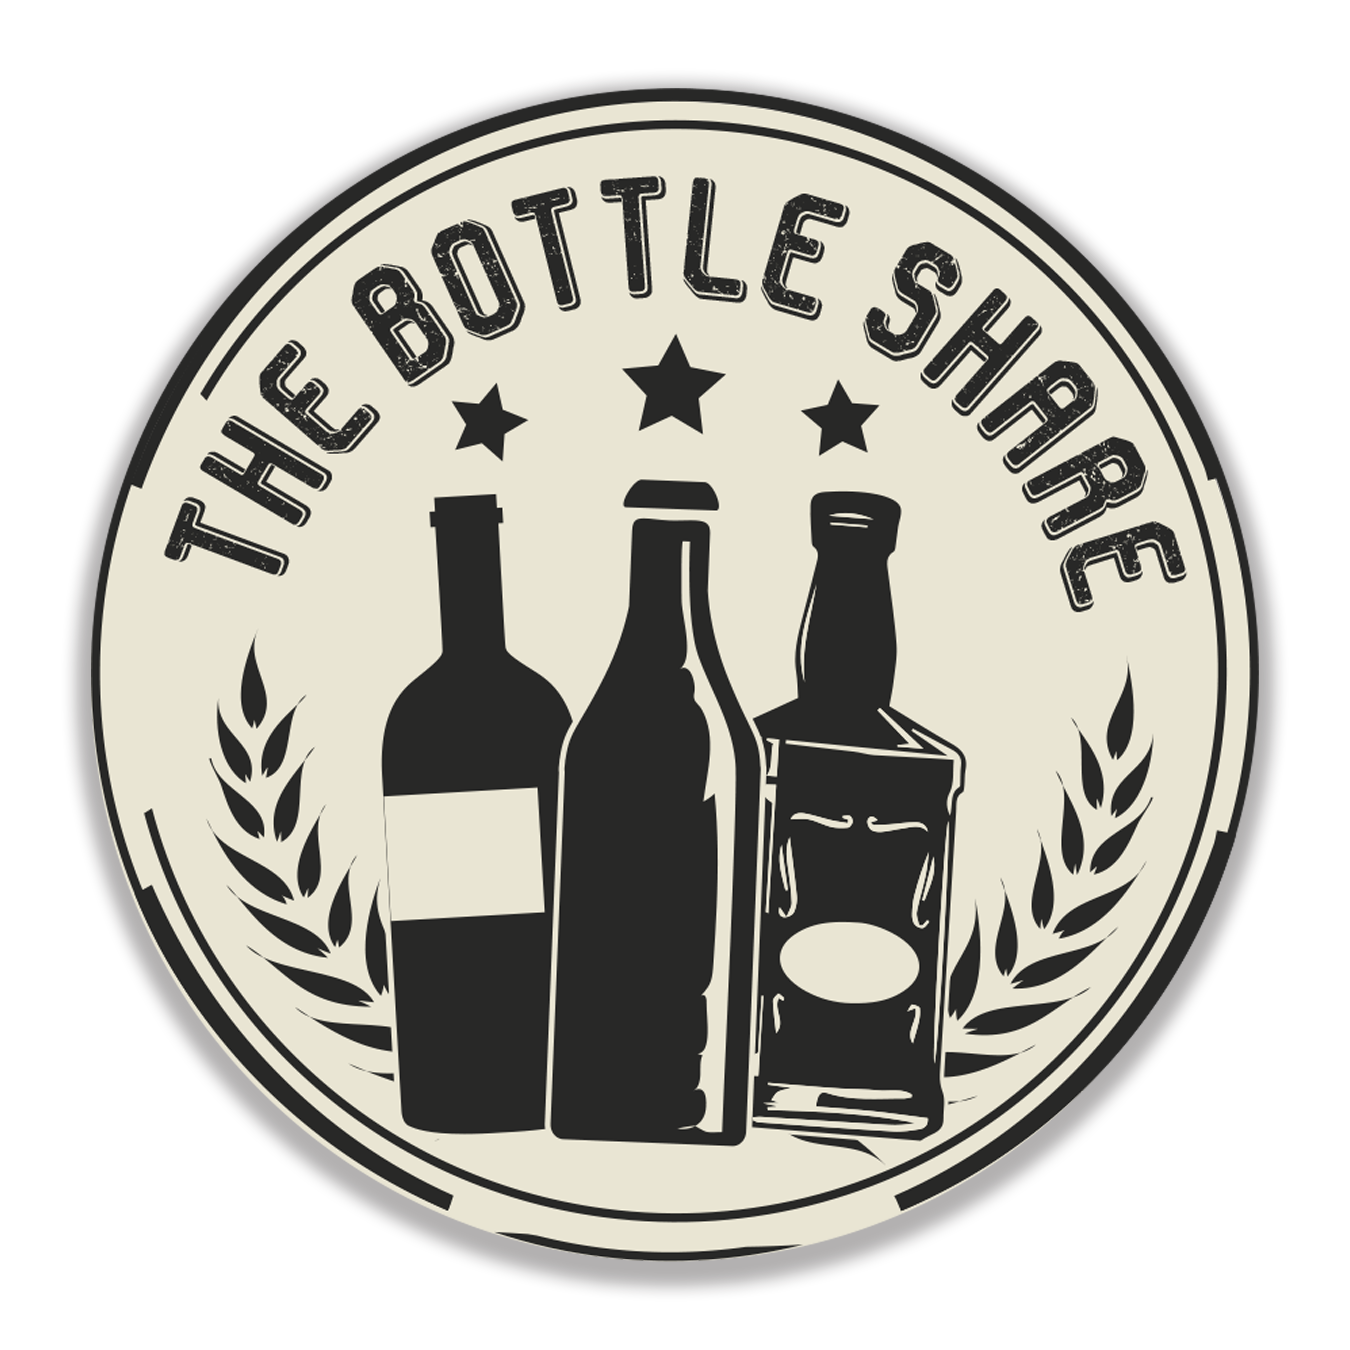 The Bottle Share